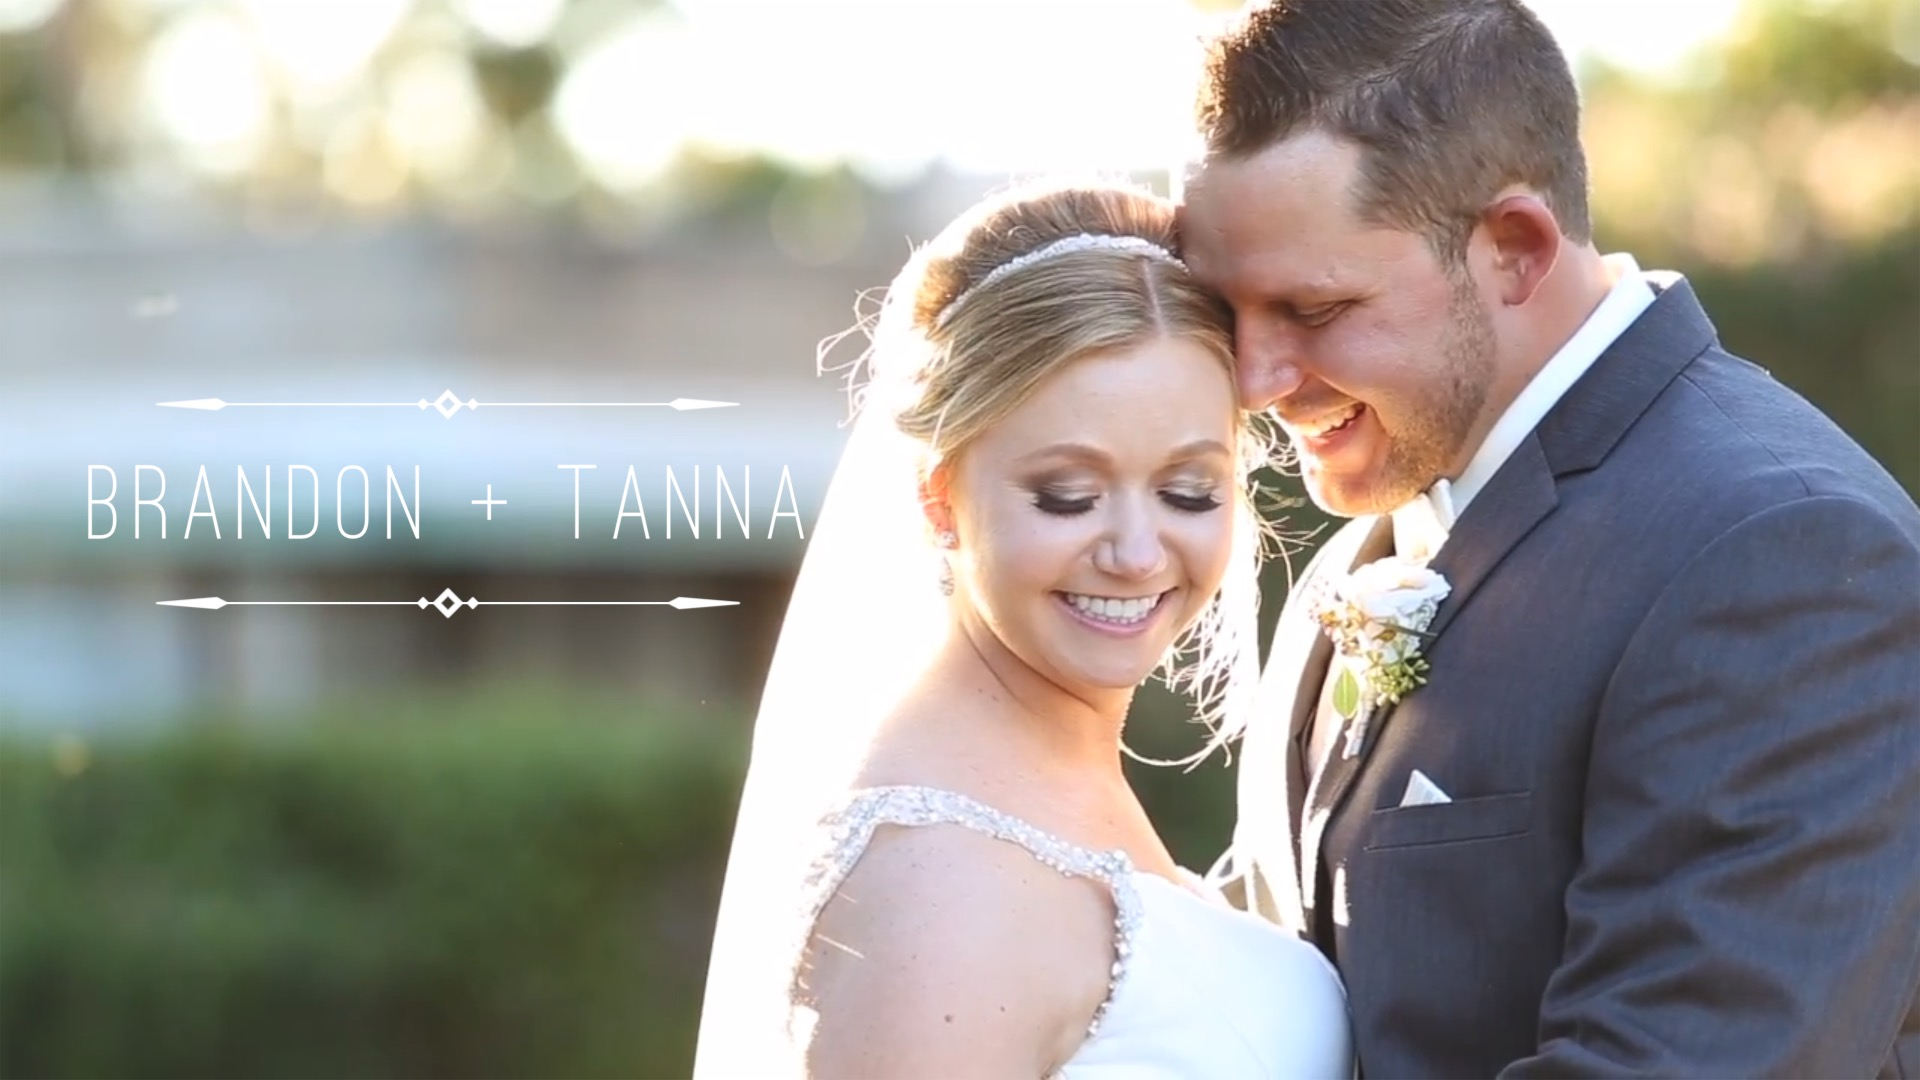 Brandon + Tanna | Phoenix, Arizona | The Arizona Biltmore Hotel